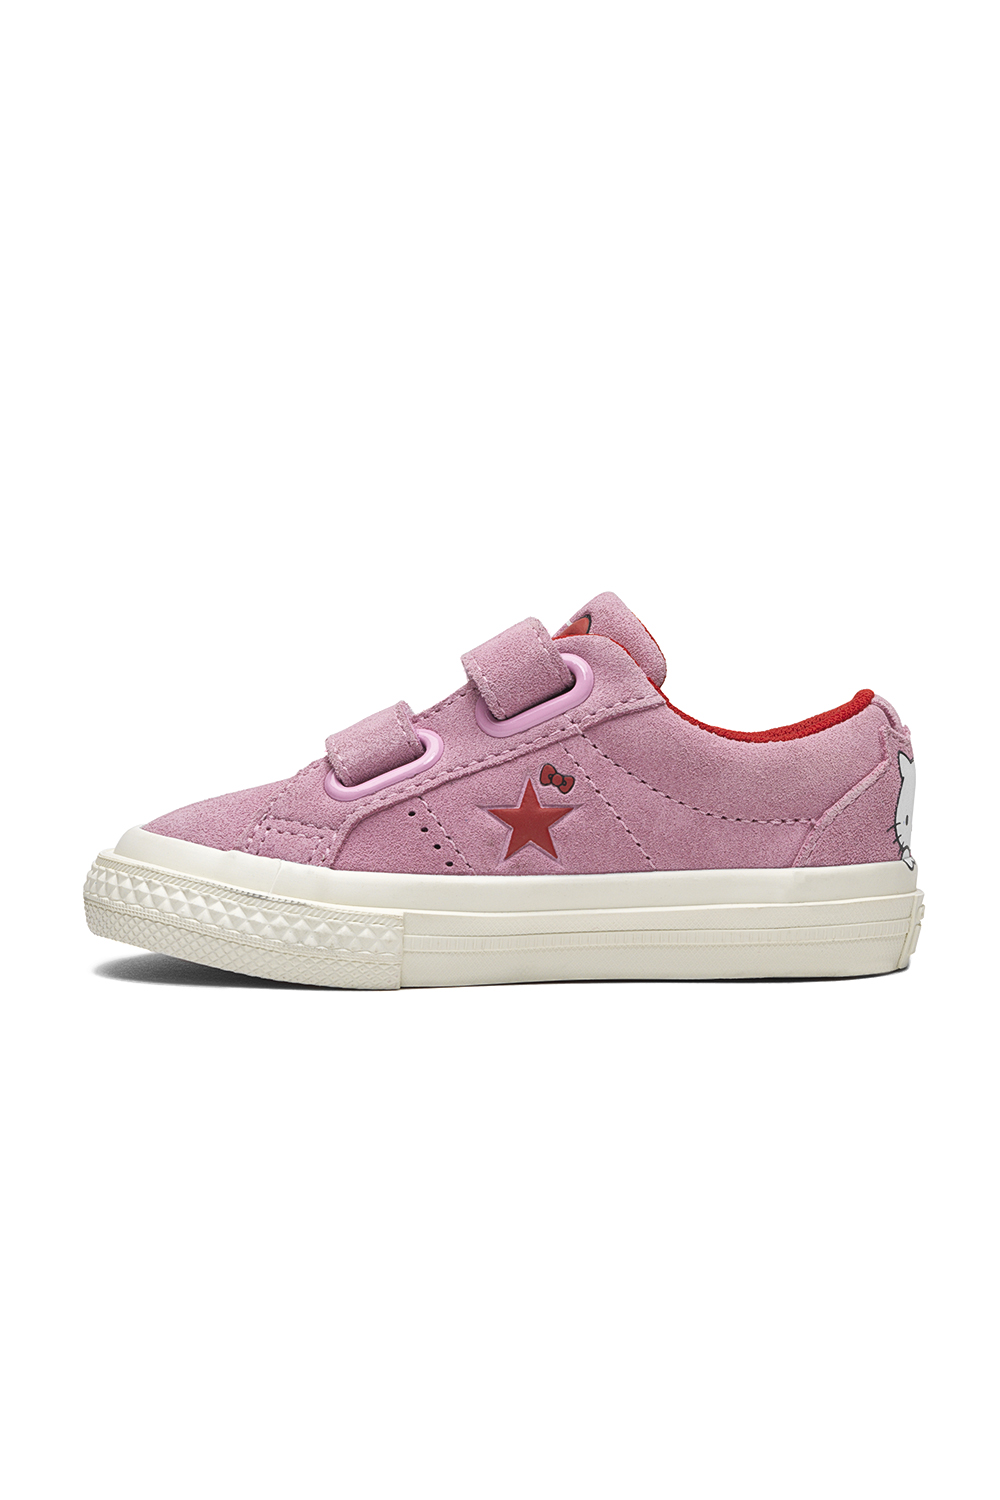 1a13c9733dd -40% CONVERSE – Βρεφικά sneakers Converse x Hello Kitty One Star ροζ